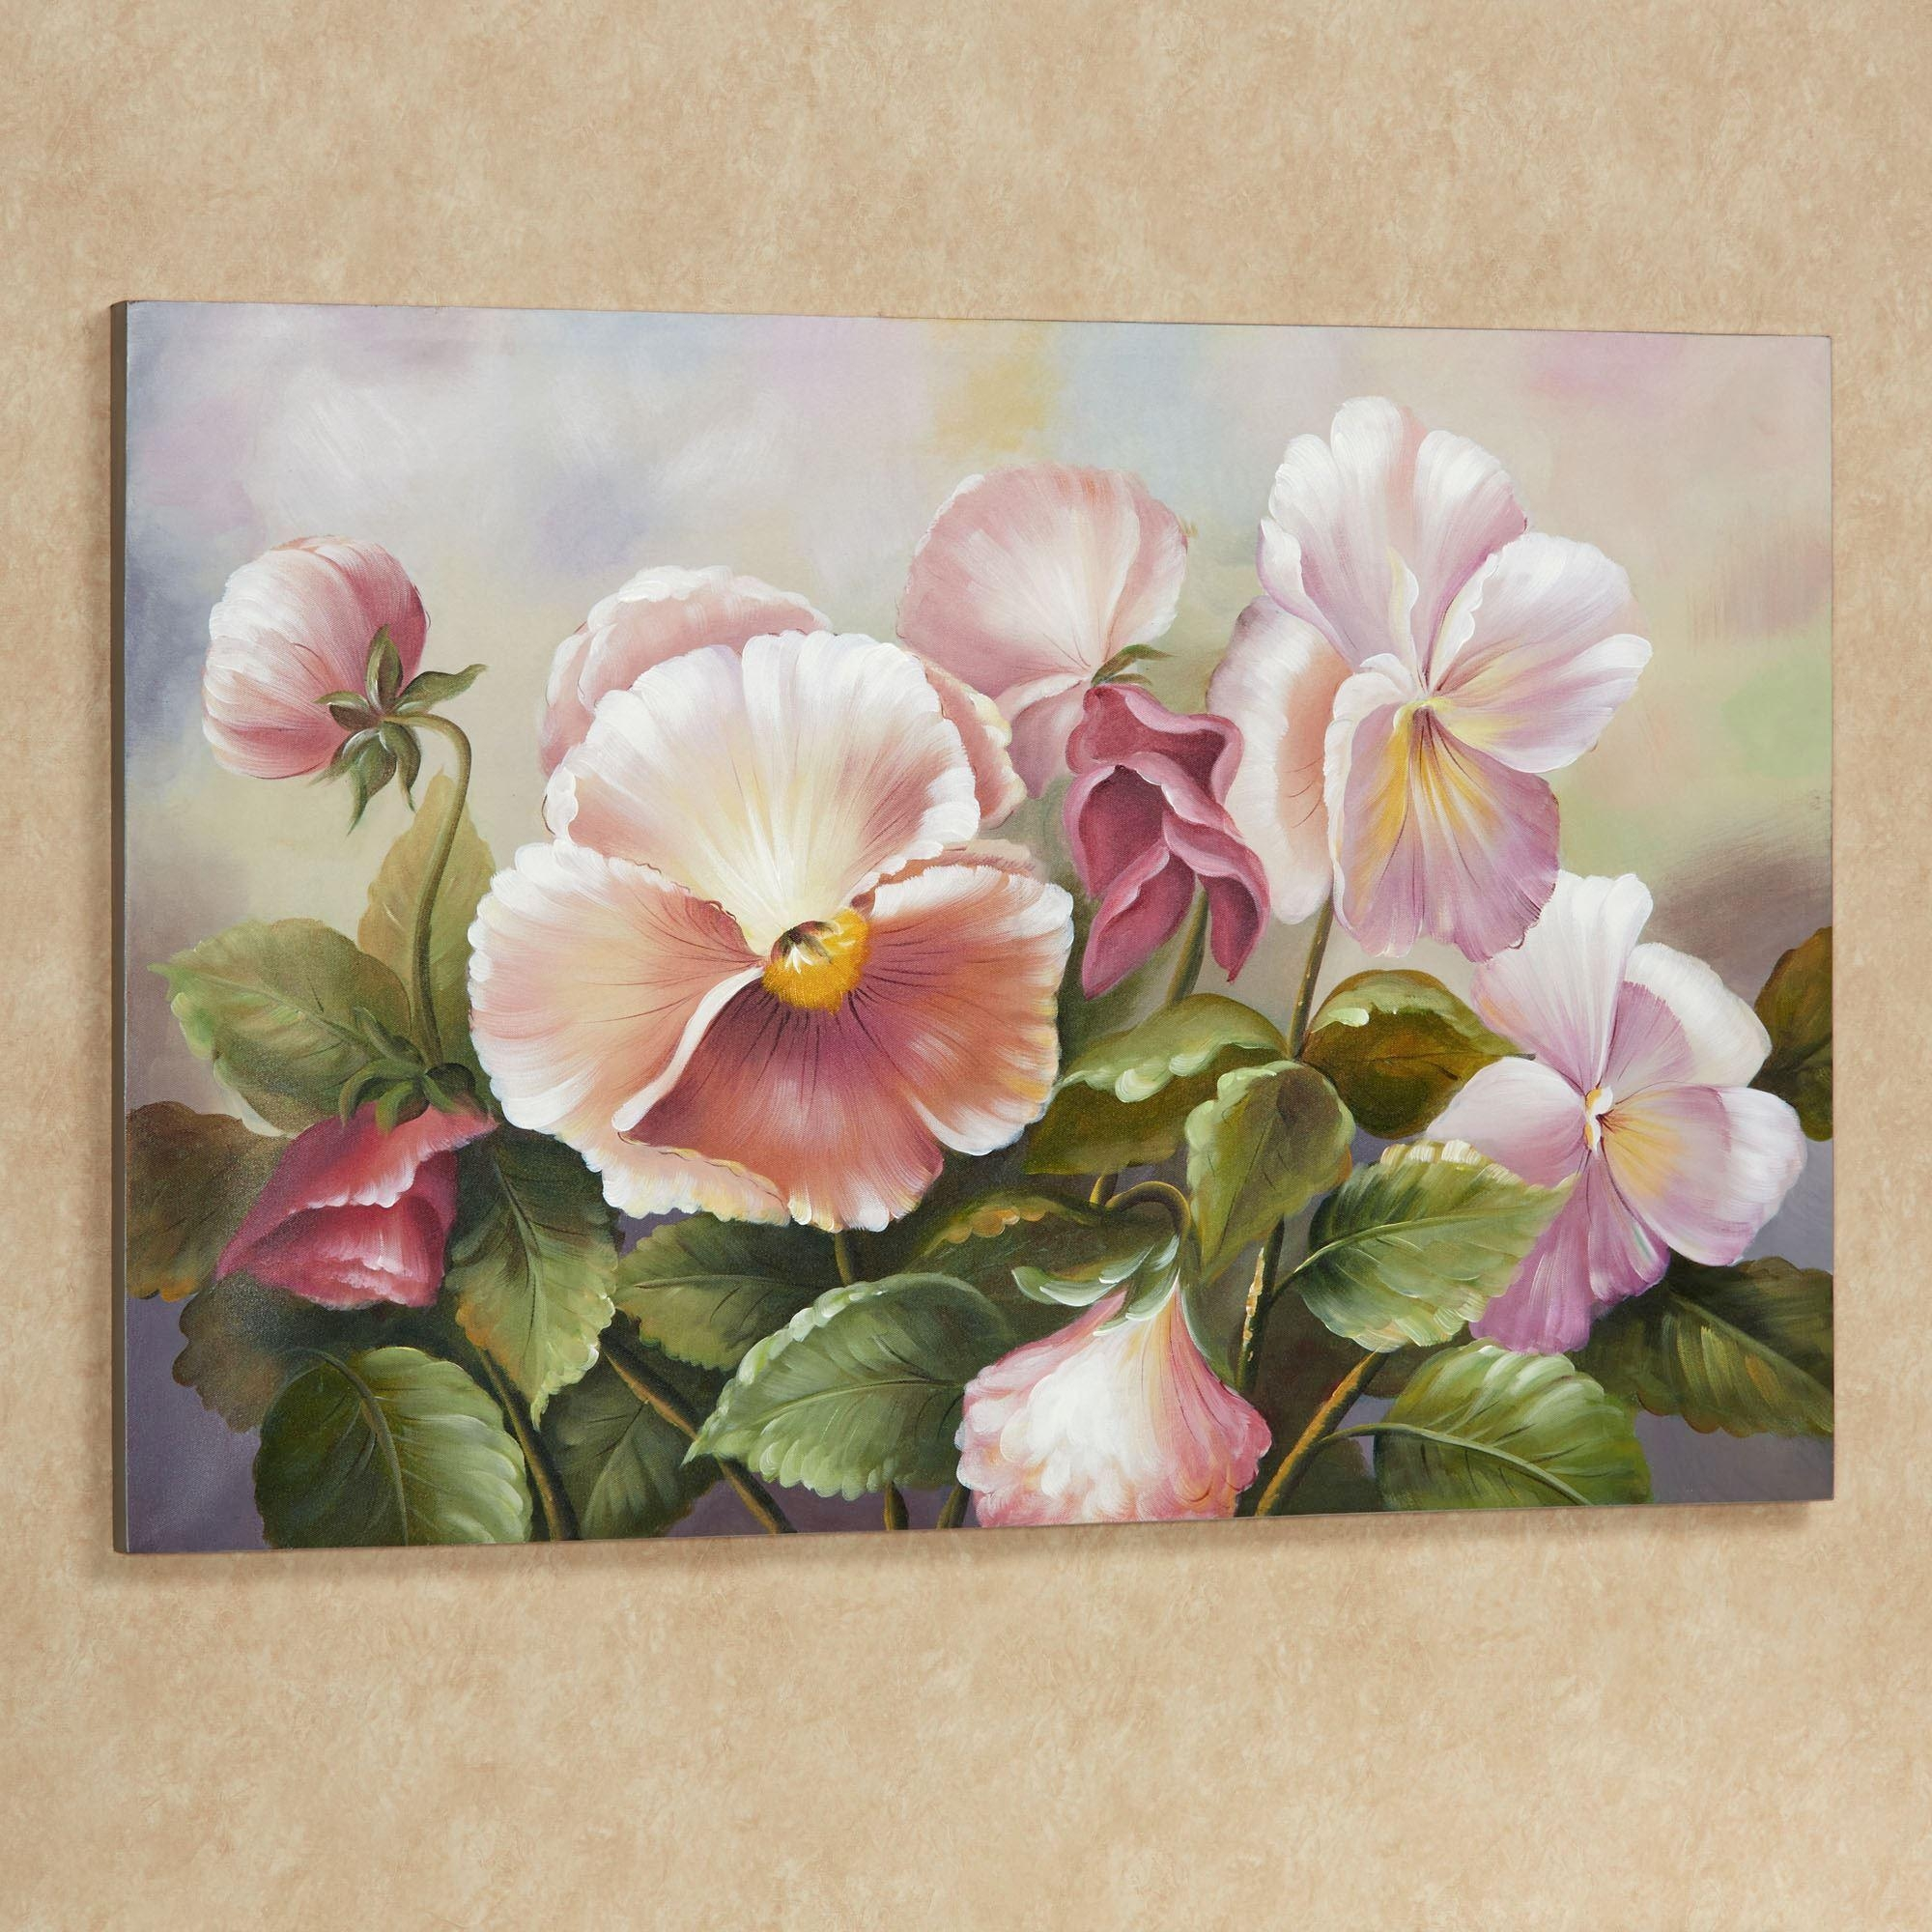 Plenty Of Pansies Floral Canvas Art For Floral Wall Art Canvas (View 9 of 20)